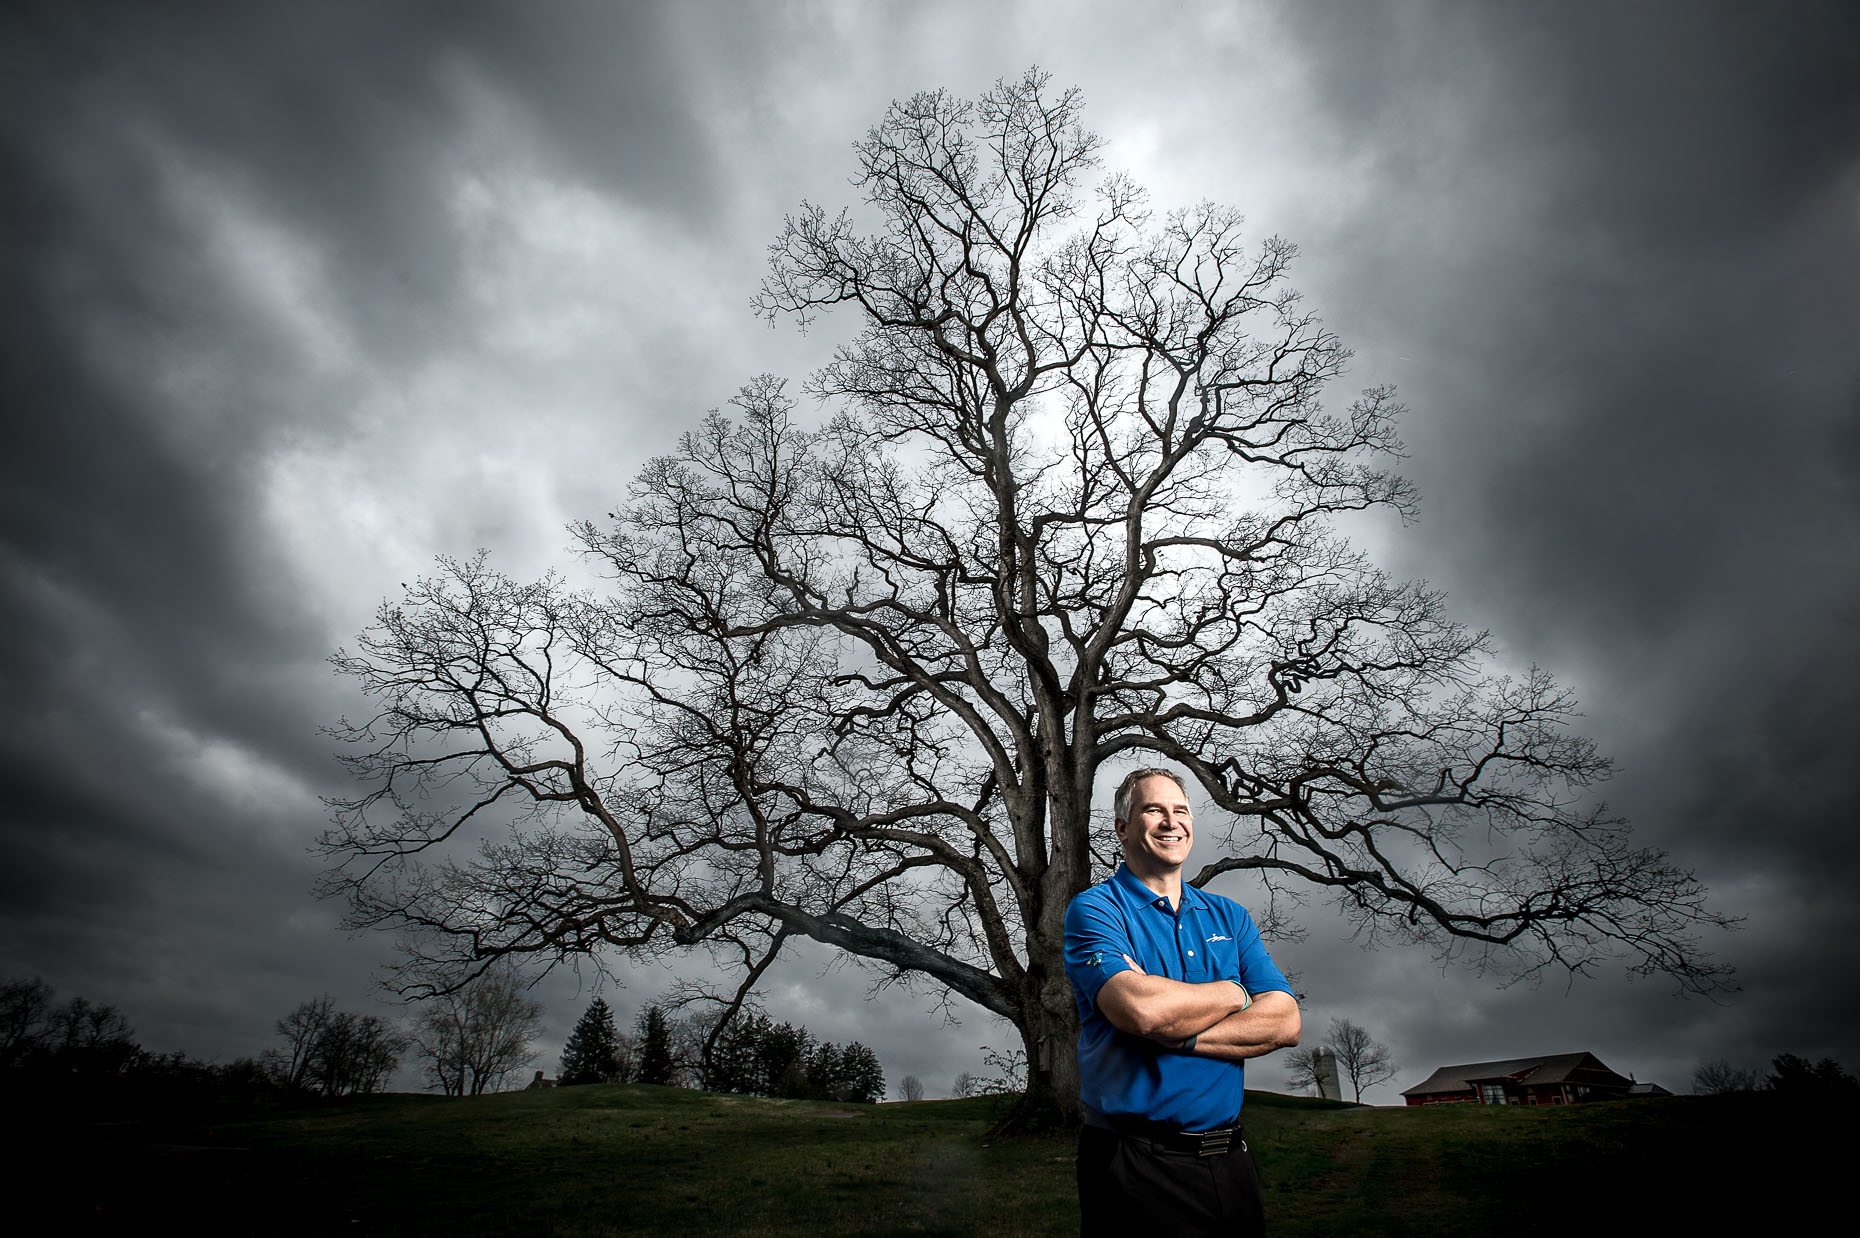 editorial-portraits-man-tree-storm